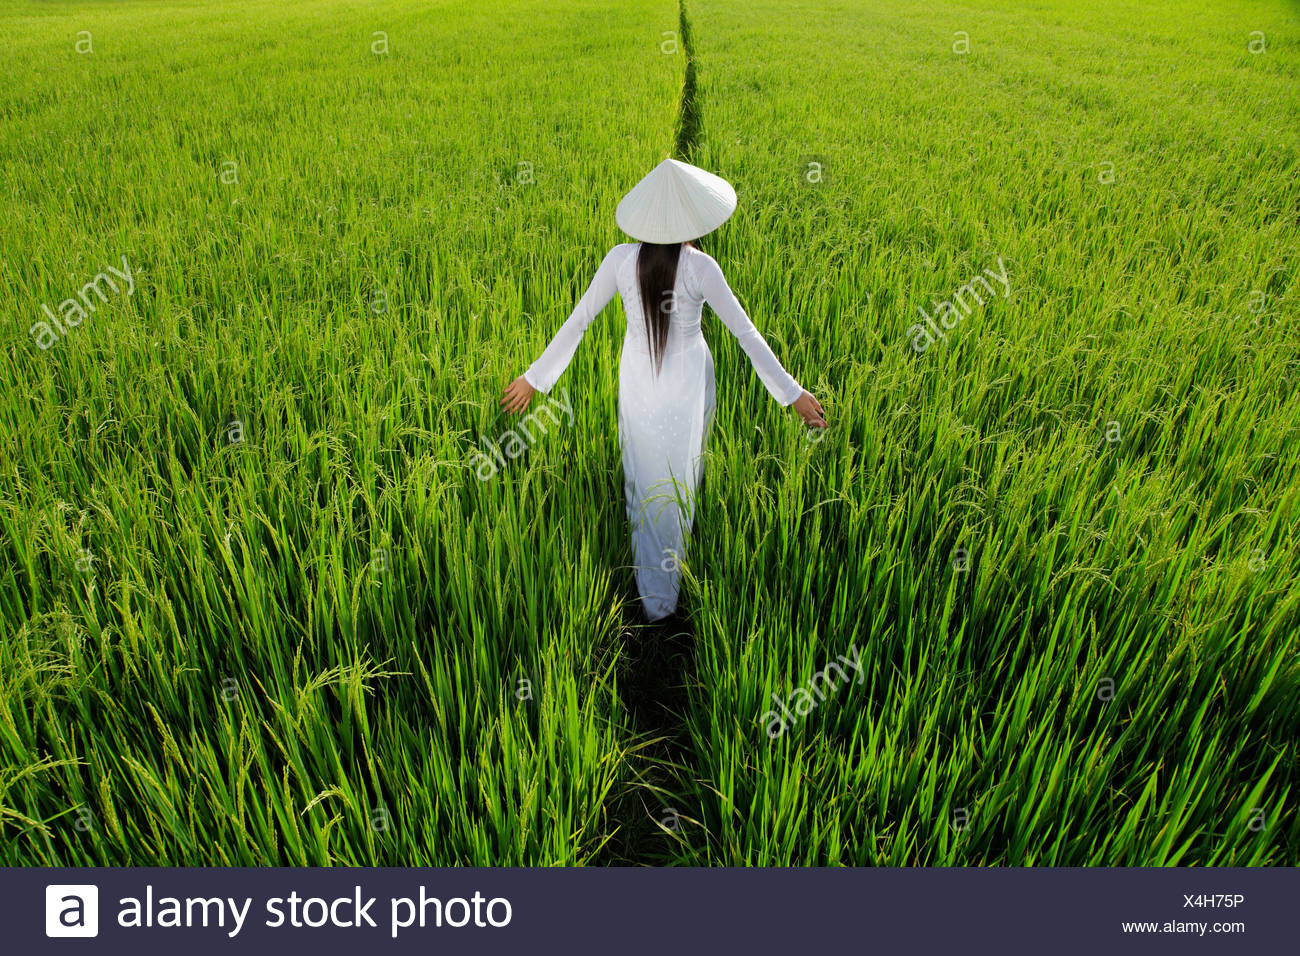 Rear view of woman wearing traditional Vietnamese outfit walking through a rice paddy - Stock Image